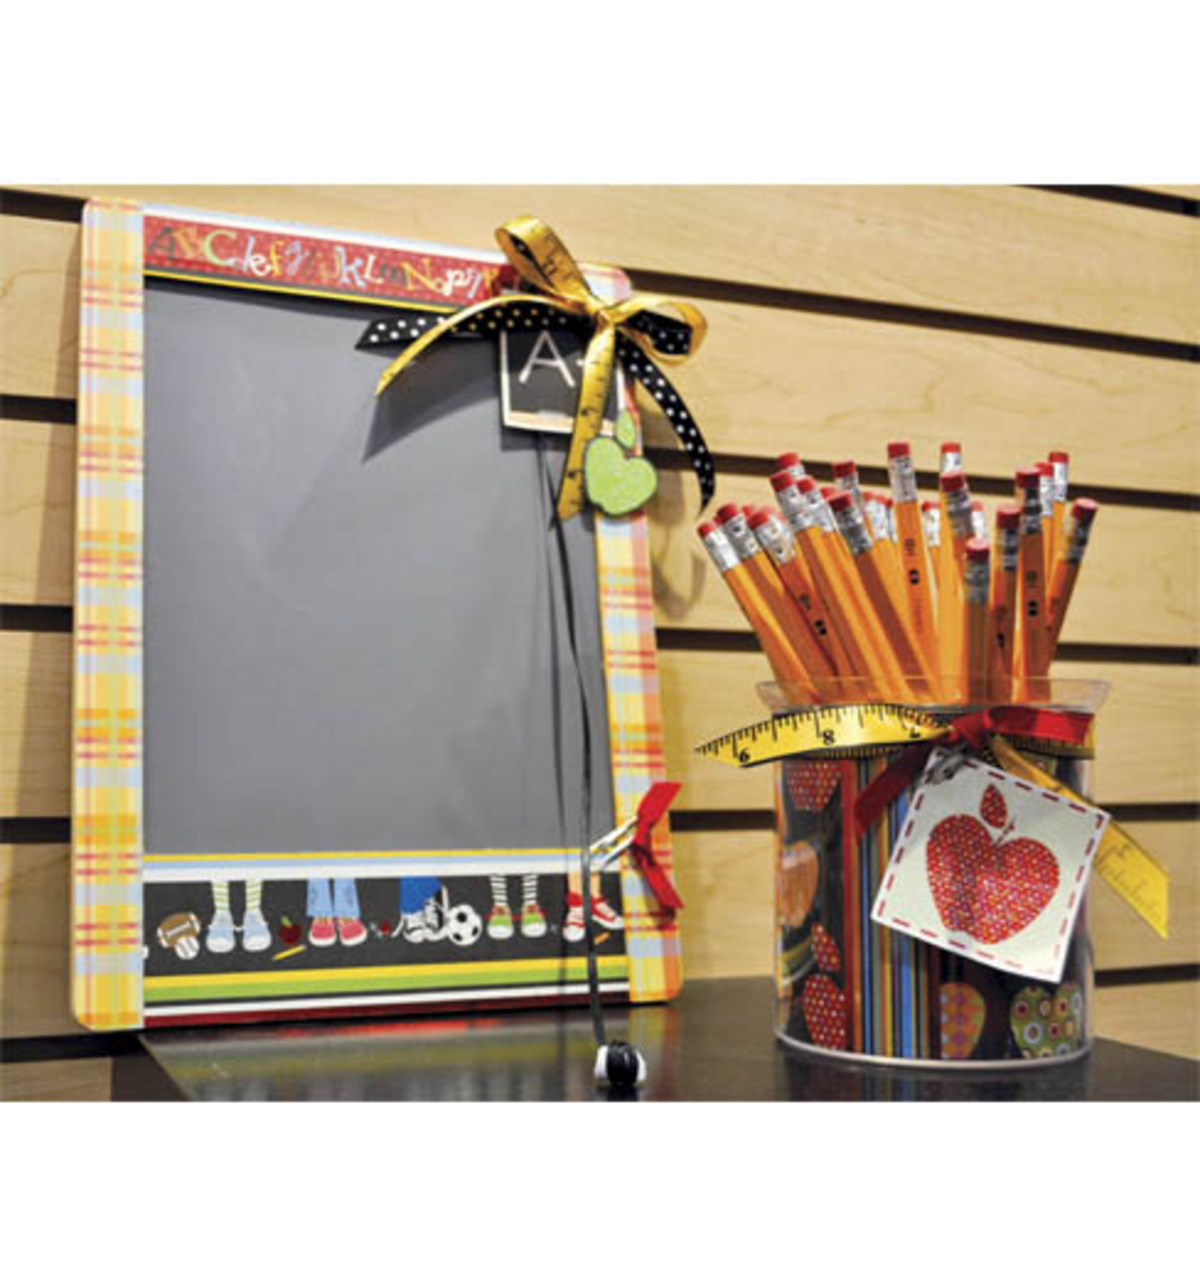 Grade School Chalkboard and Pencil Cup Set